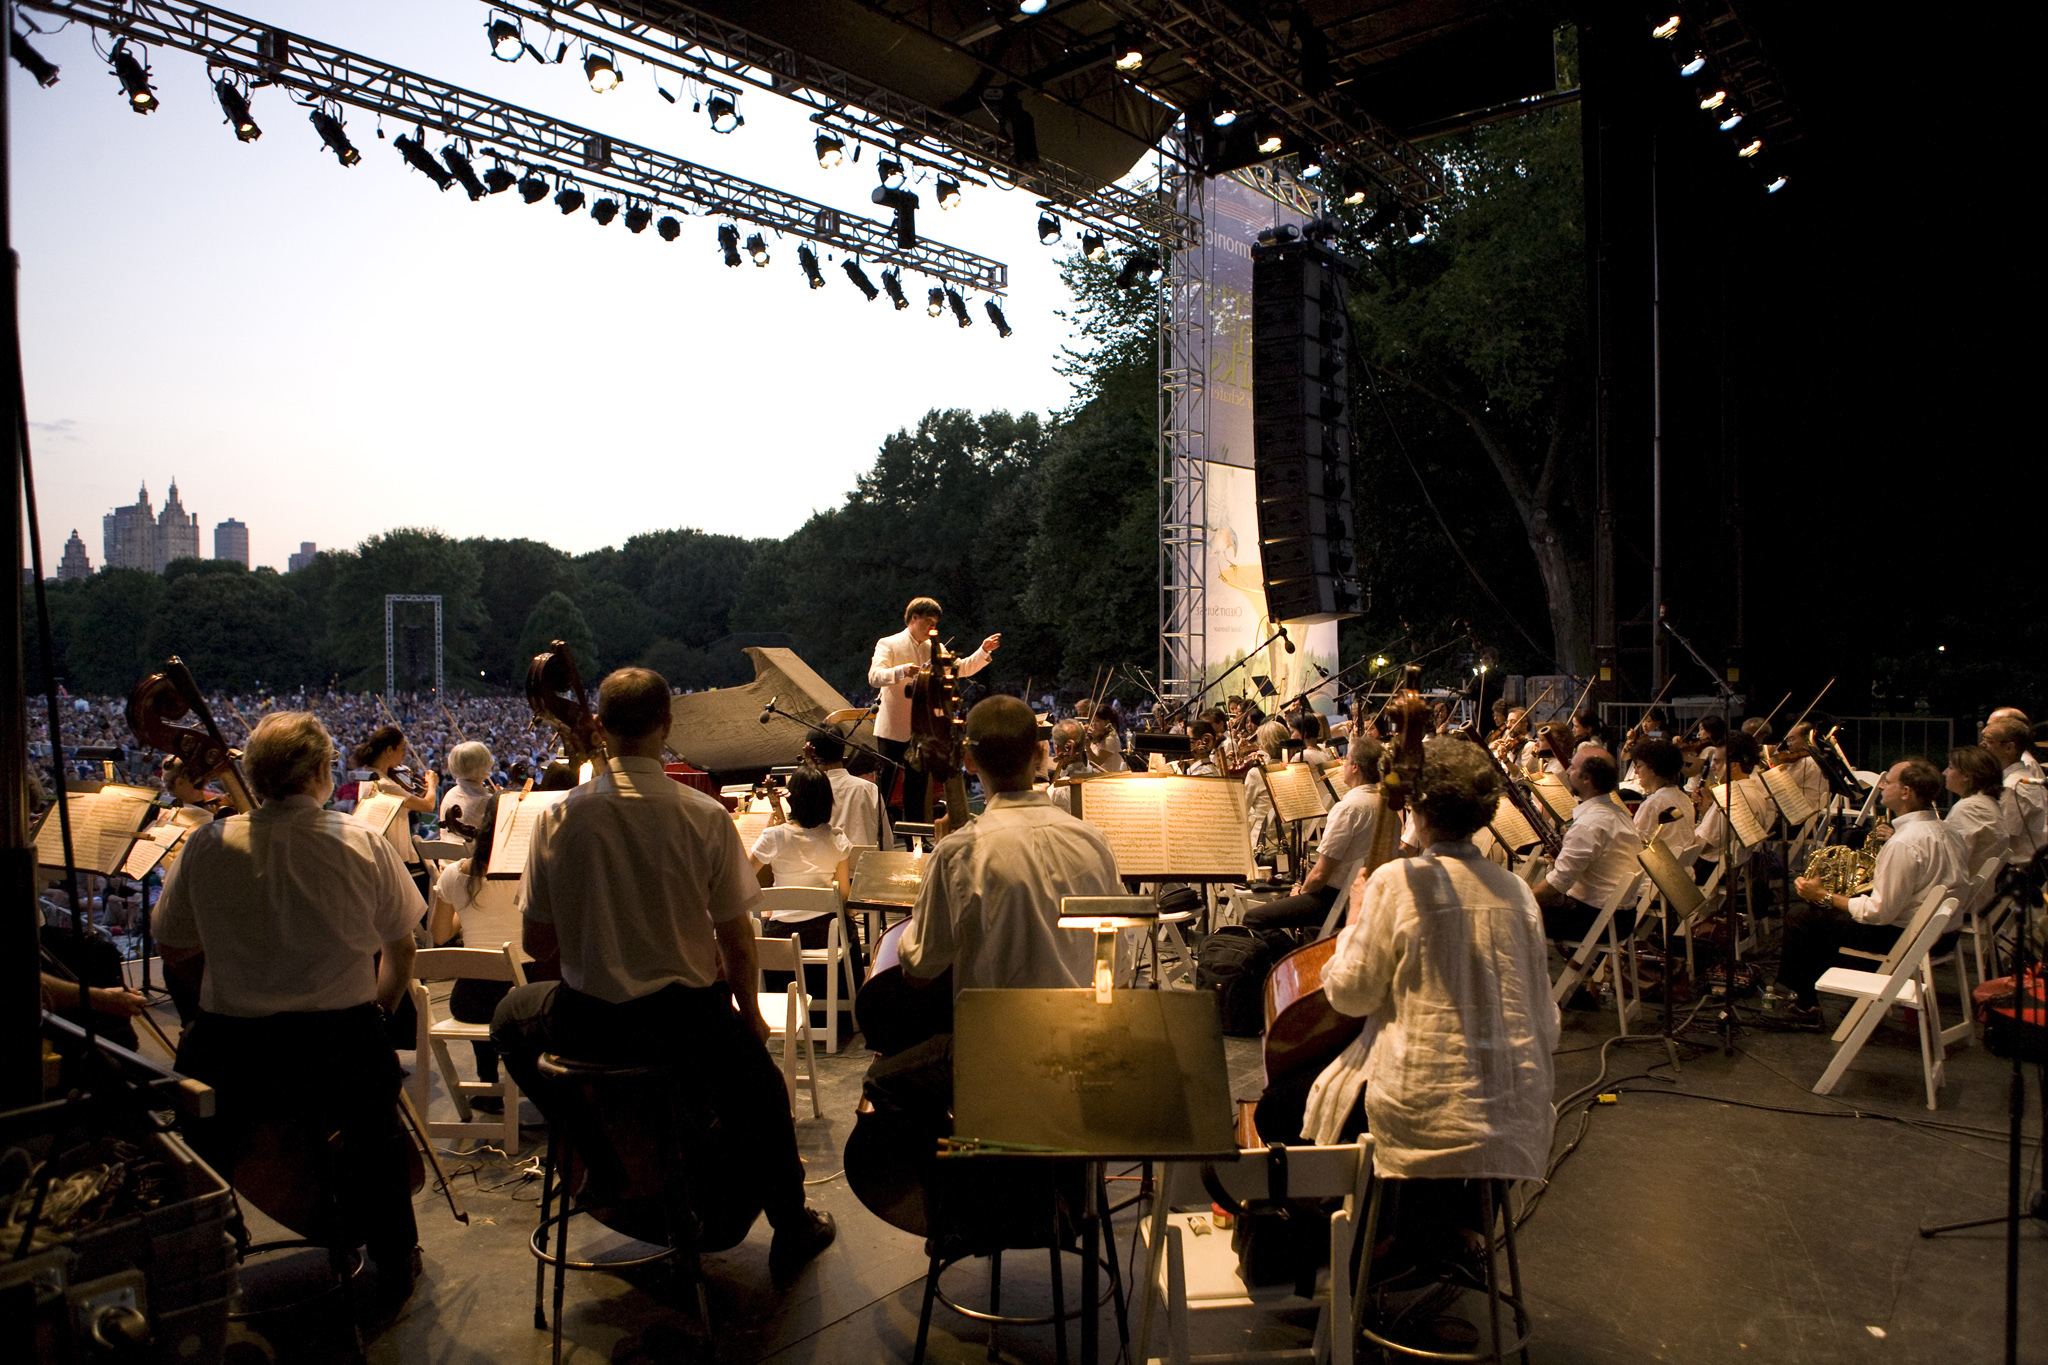 New York Philharmonic: Concerts in the Parks Concert int he park